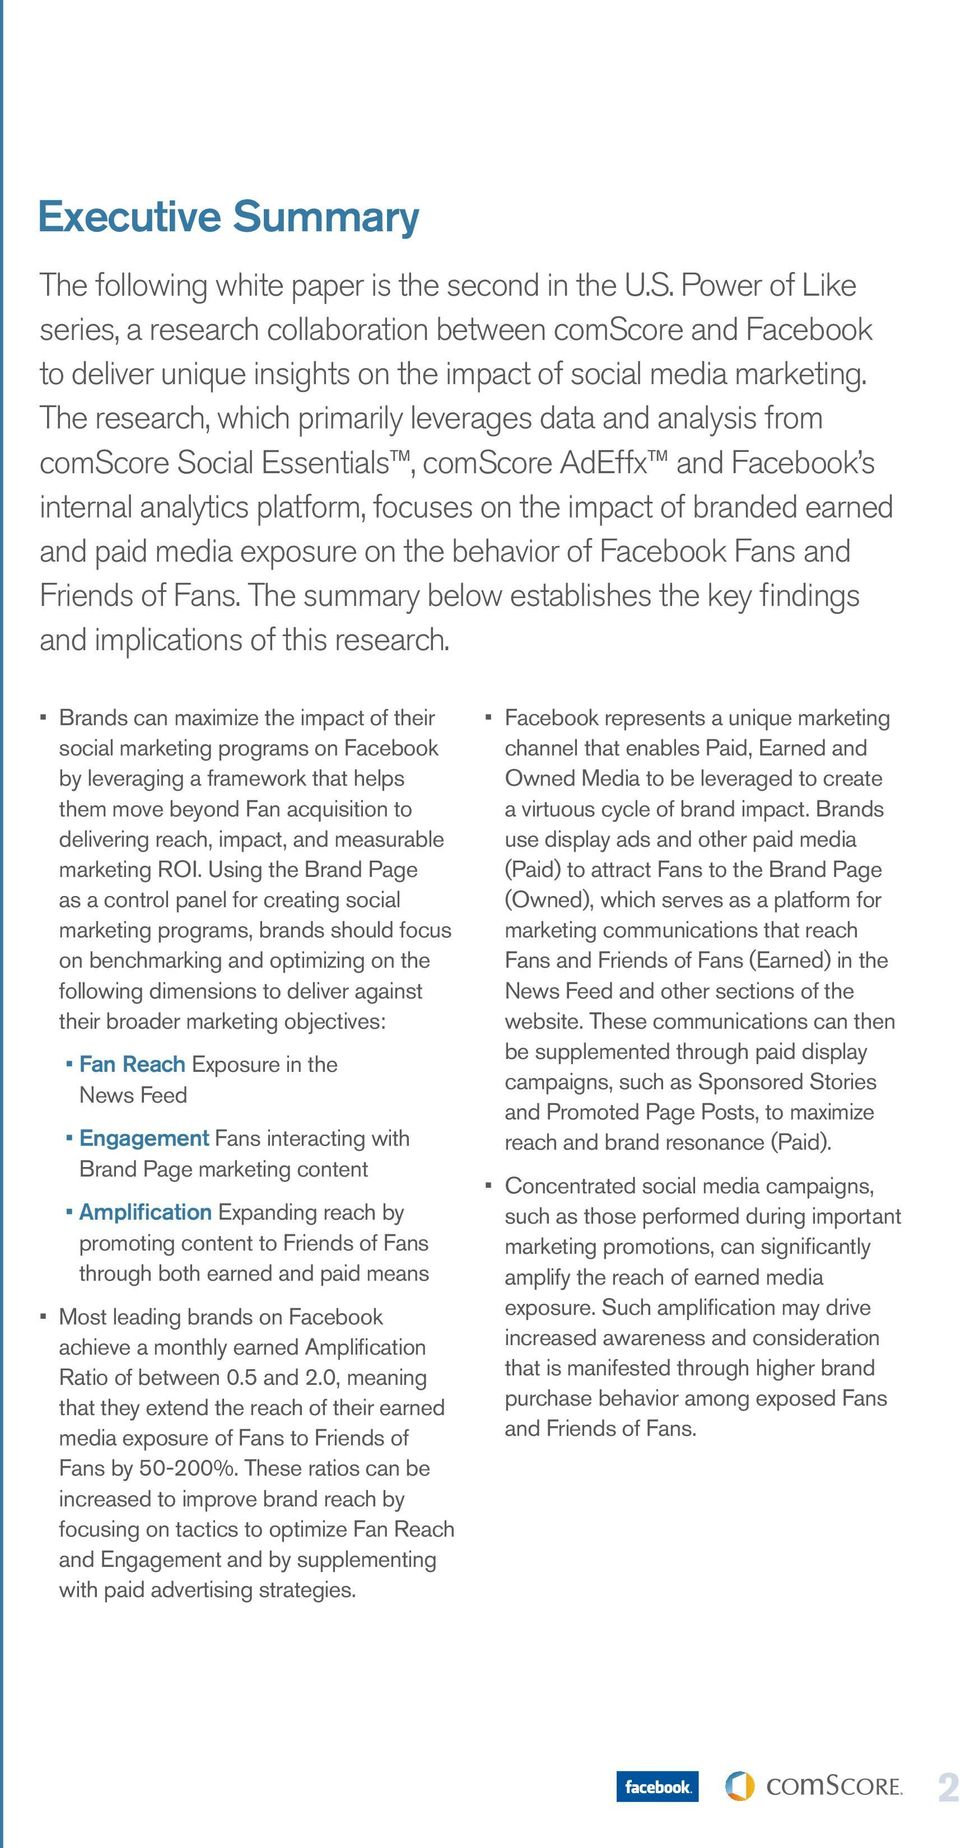 media exposure on the behavior of Facebook Fans and Friends of Fans. The summary below establishes the key findings and implications of this research.